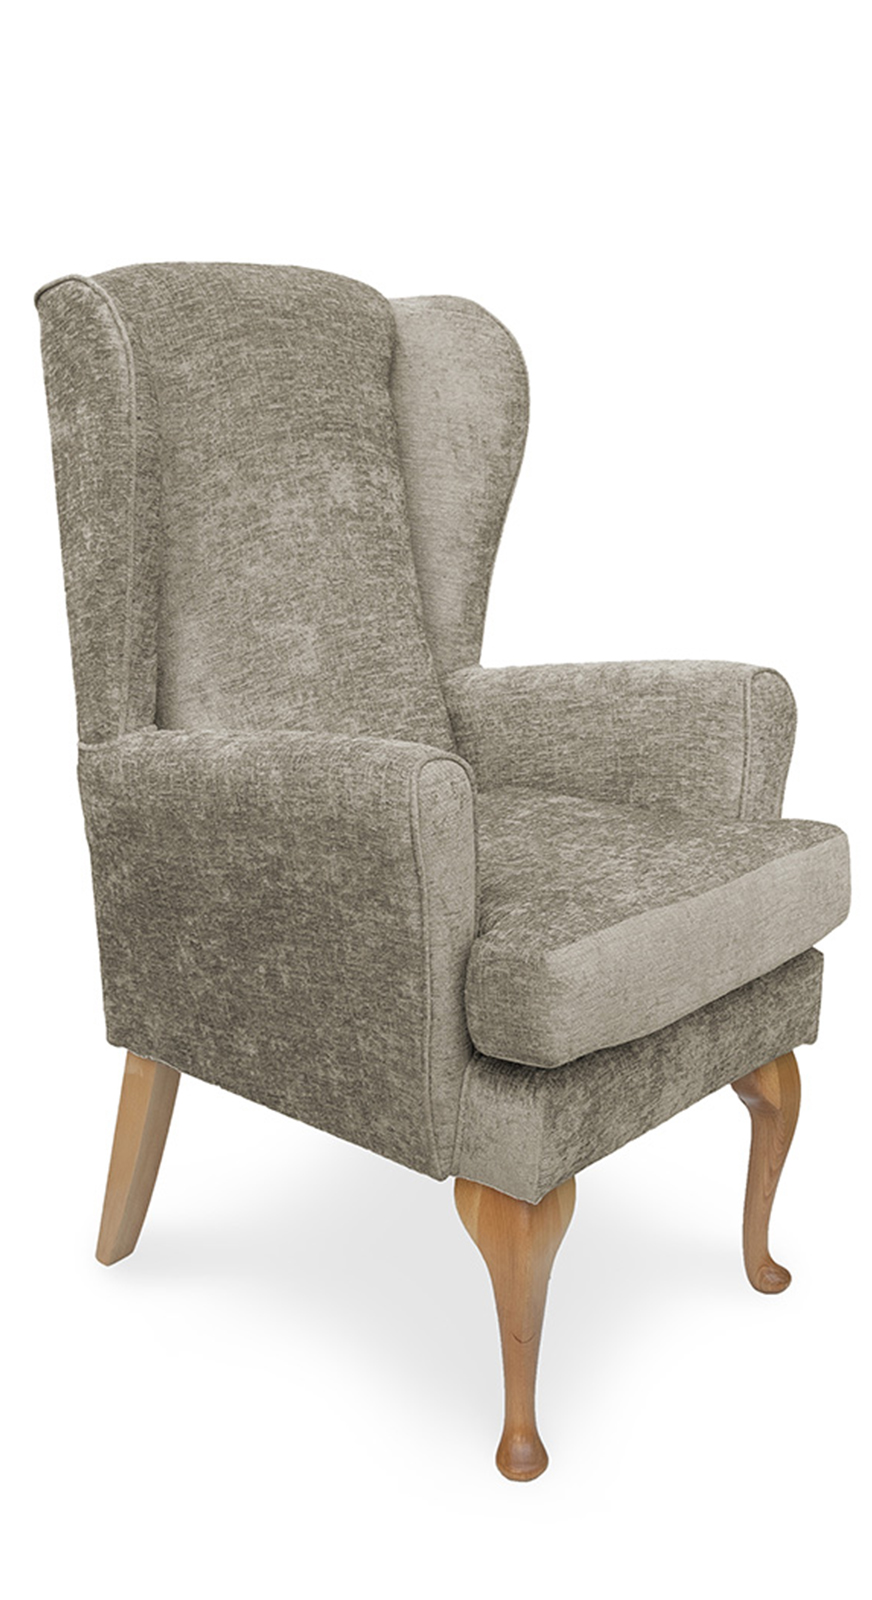 Mawcare - The Buckingham - high seat orthopedic Wingback fireside  Armchair in Darcy fawn, Stain Resistant Finish, Waterproof, Breathable, Anti-microbial